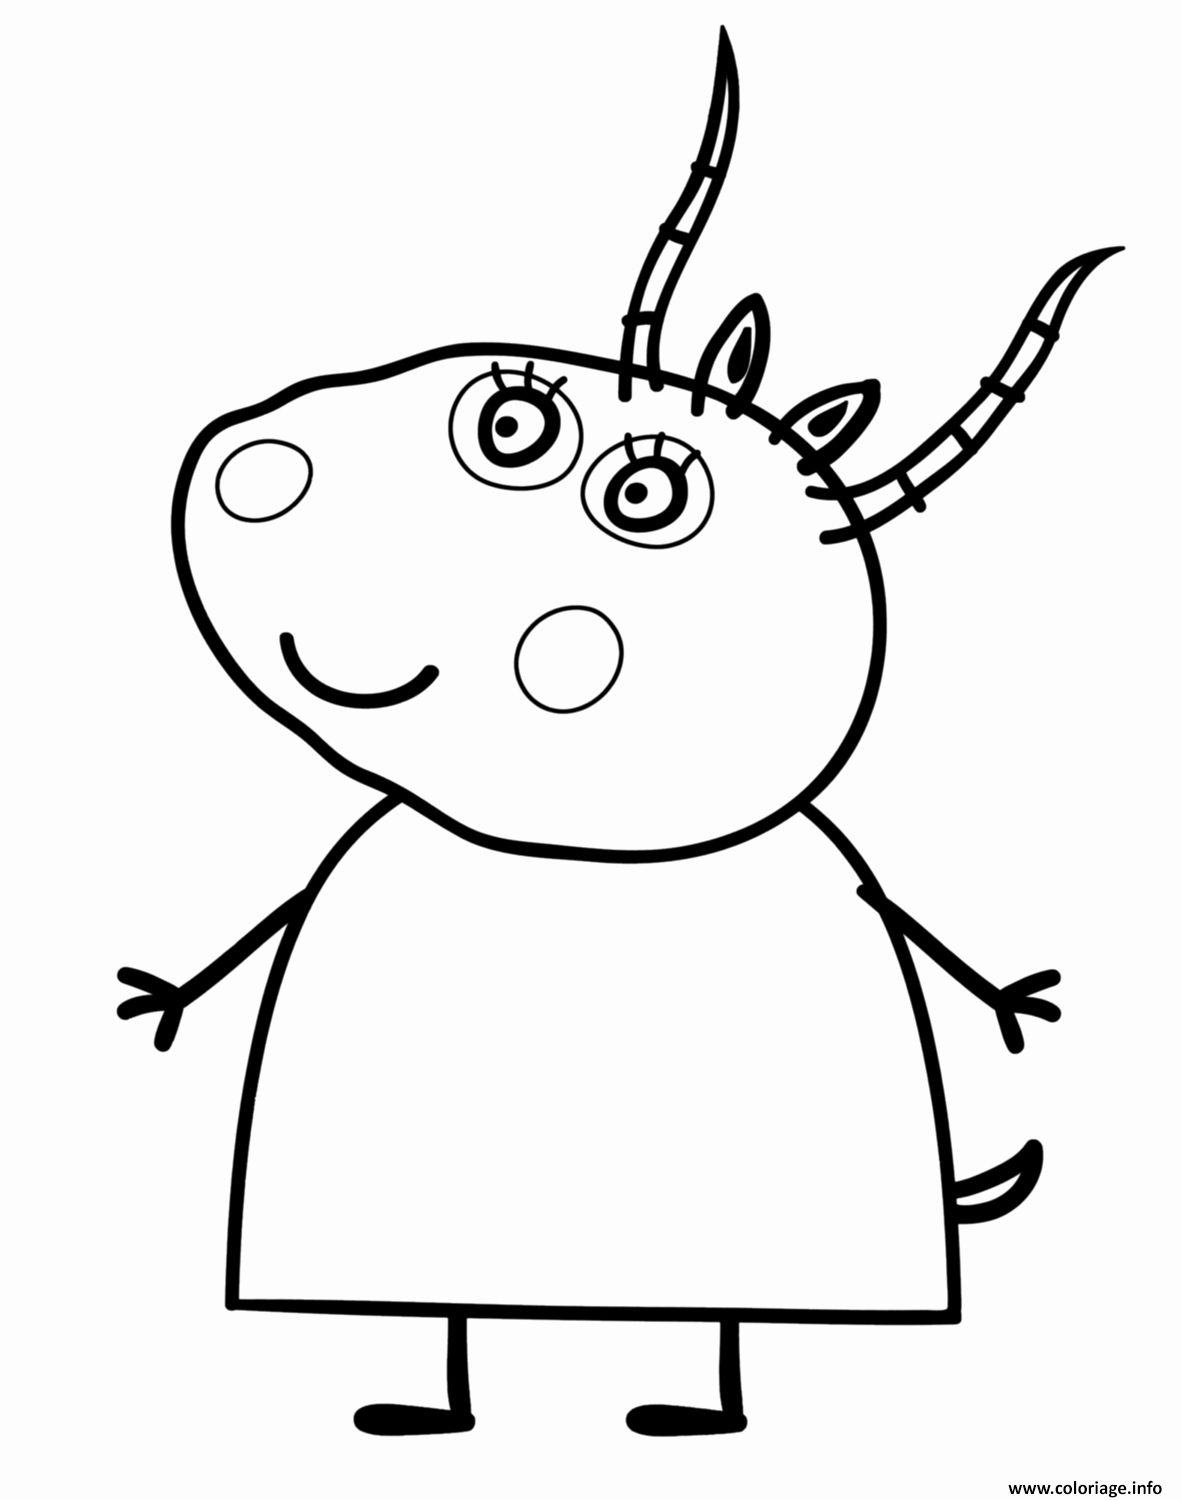 Coloriage Peppa Pig Imprimer Inspirant Stock Dessin Livre Ouvert Imprimer Luxe Luxe Coloriages Peppa Pig Neige